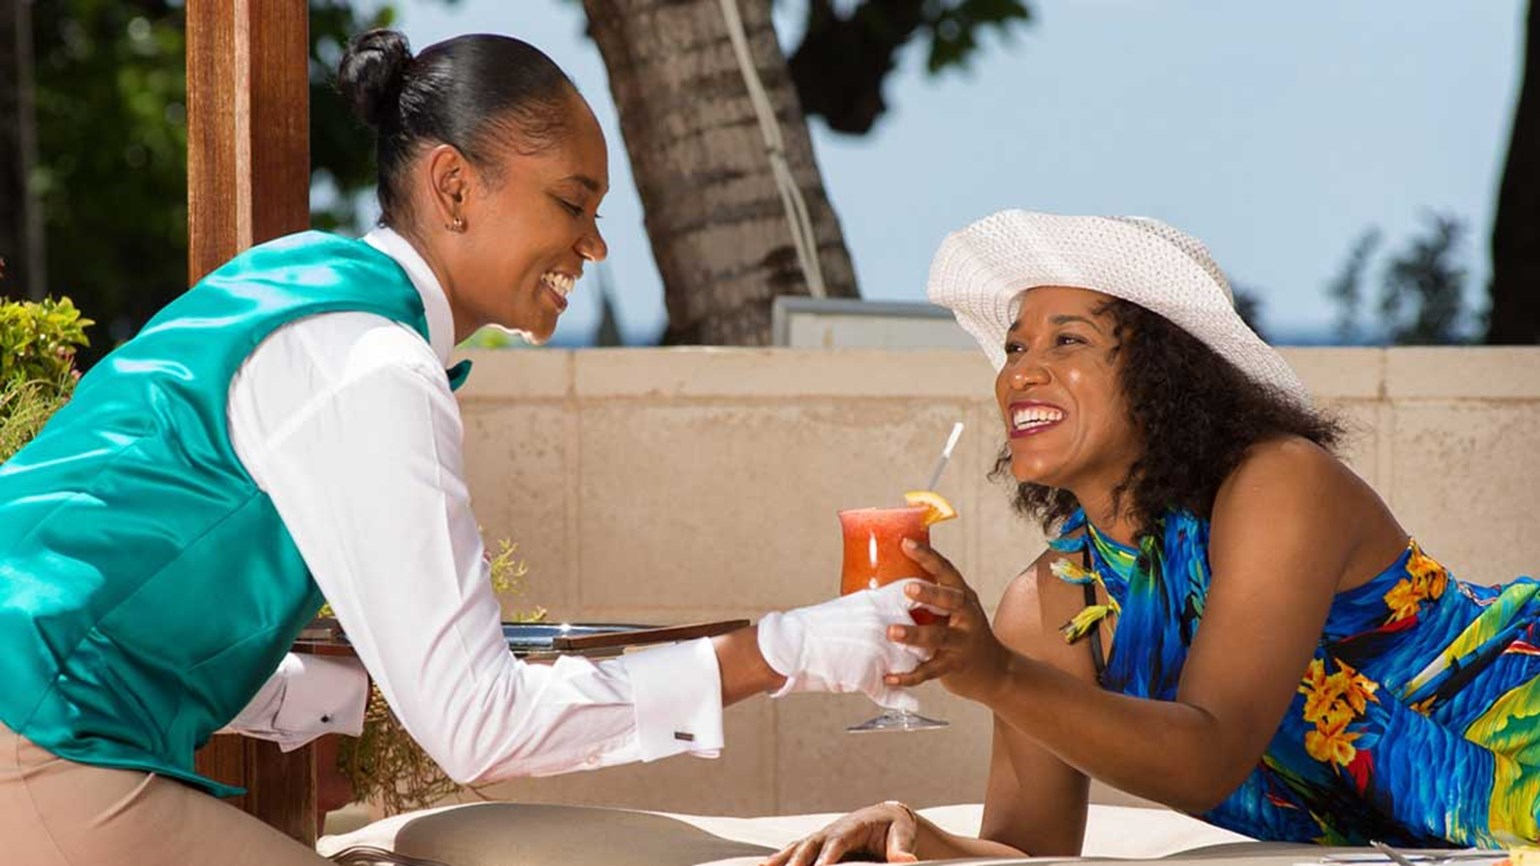 Hilton Barbados introduces butler service